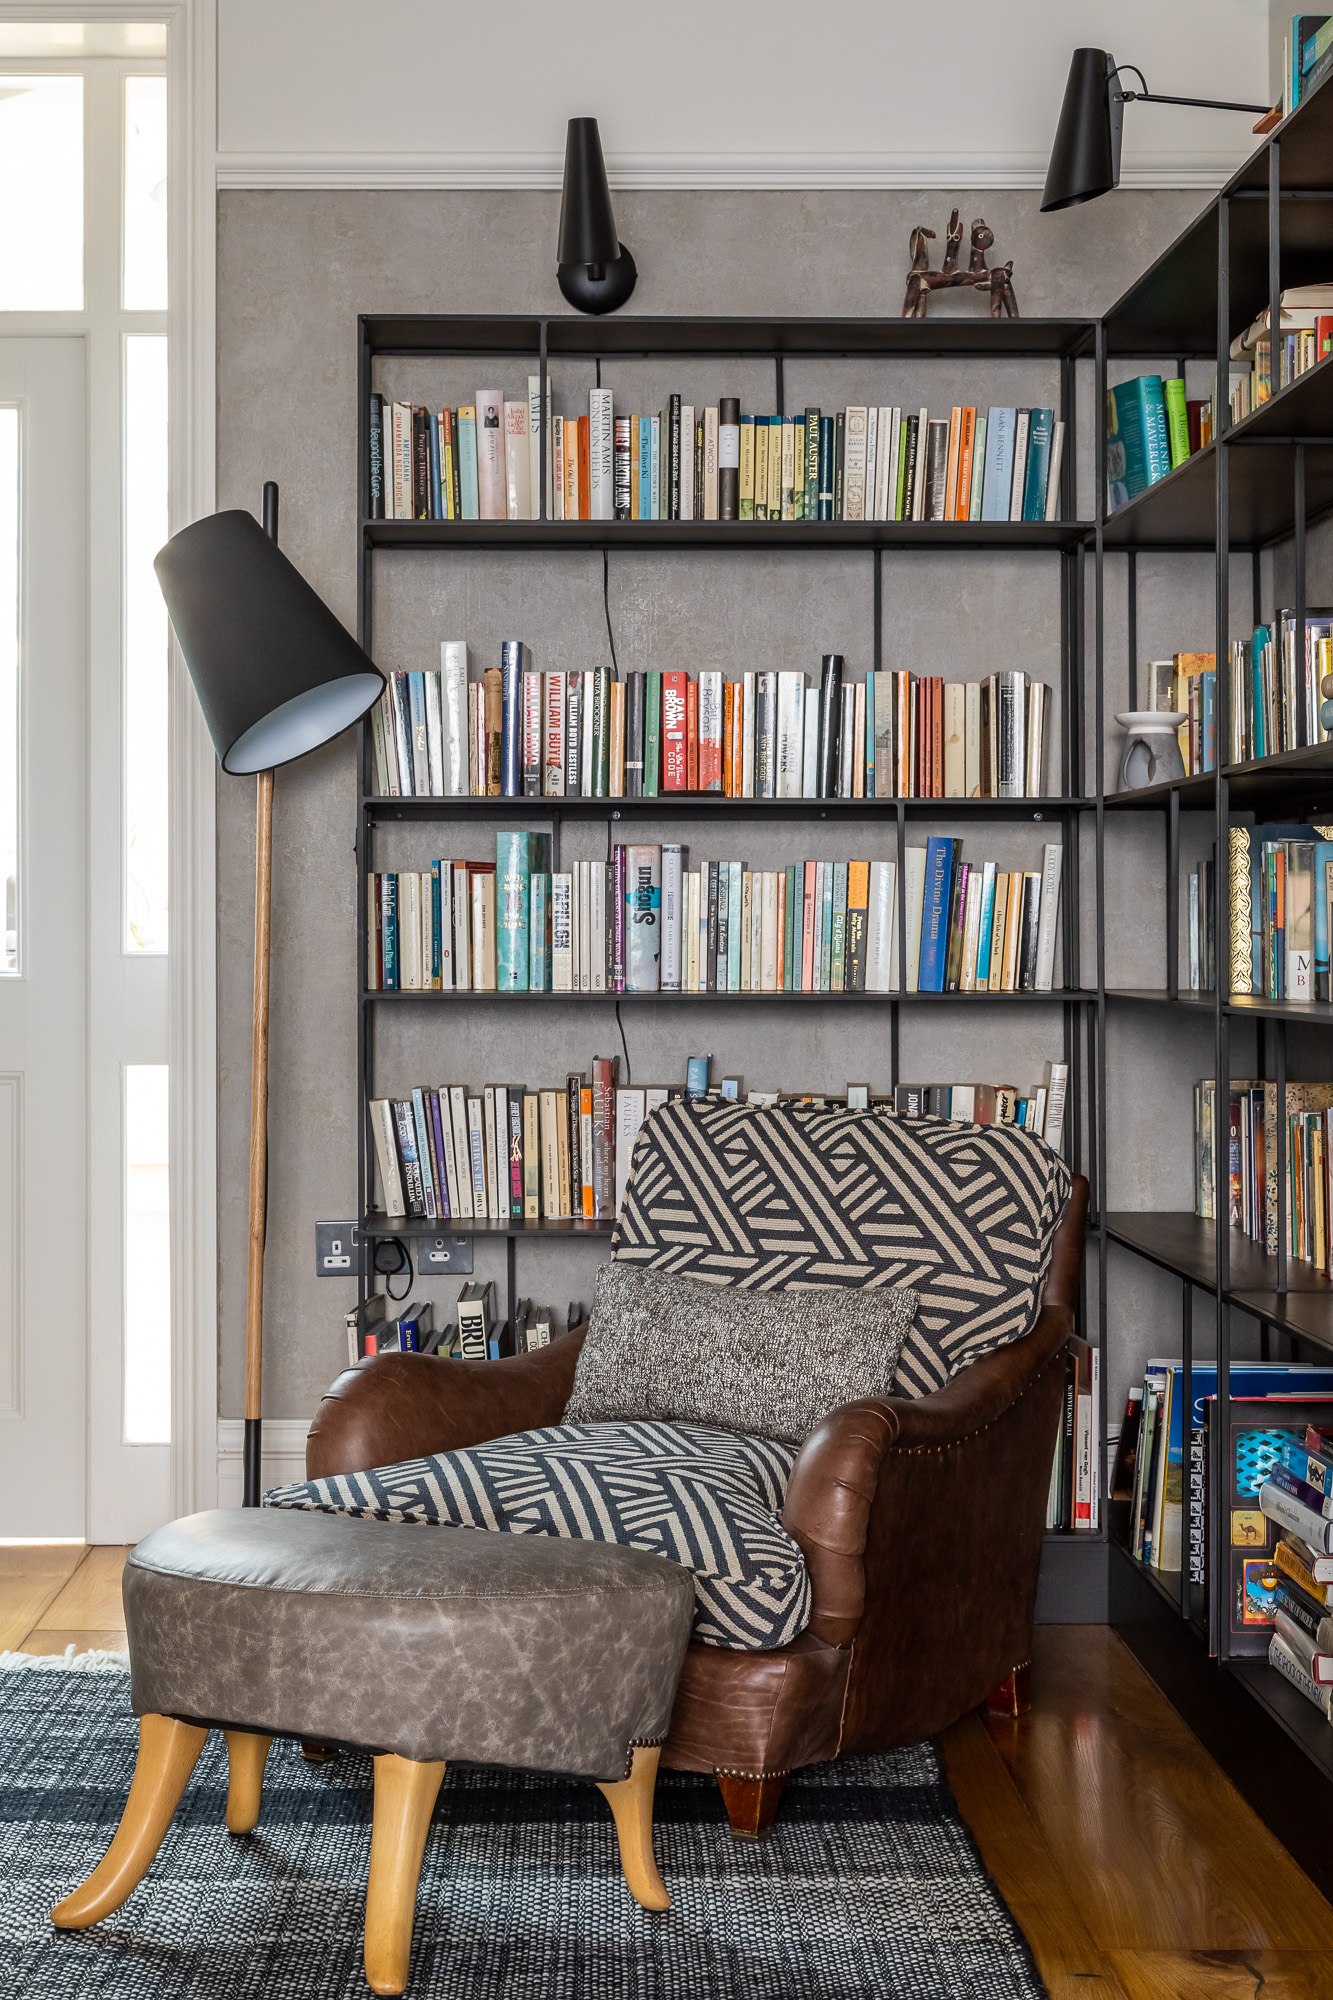 jonathan bond, interior photographer, armchair & reading floor lamp, mill road, cambridge